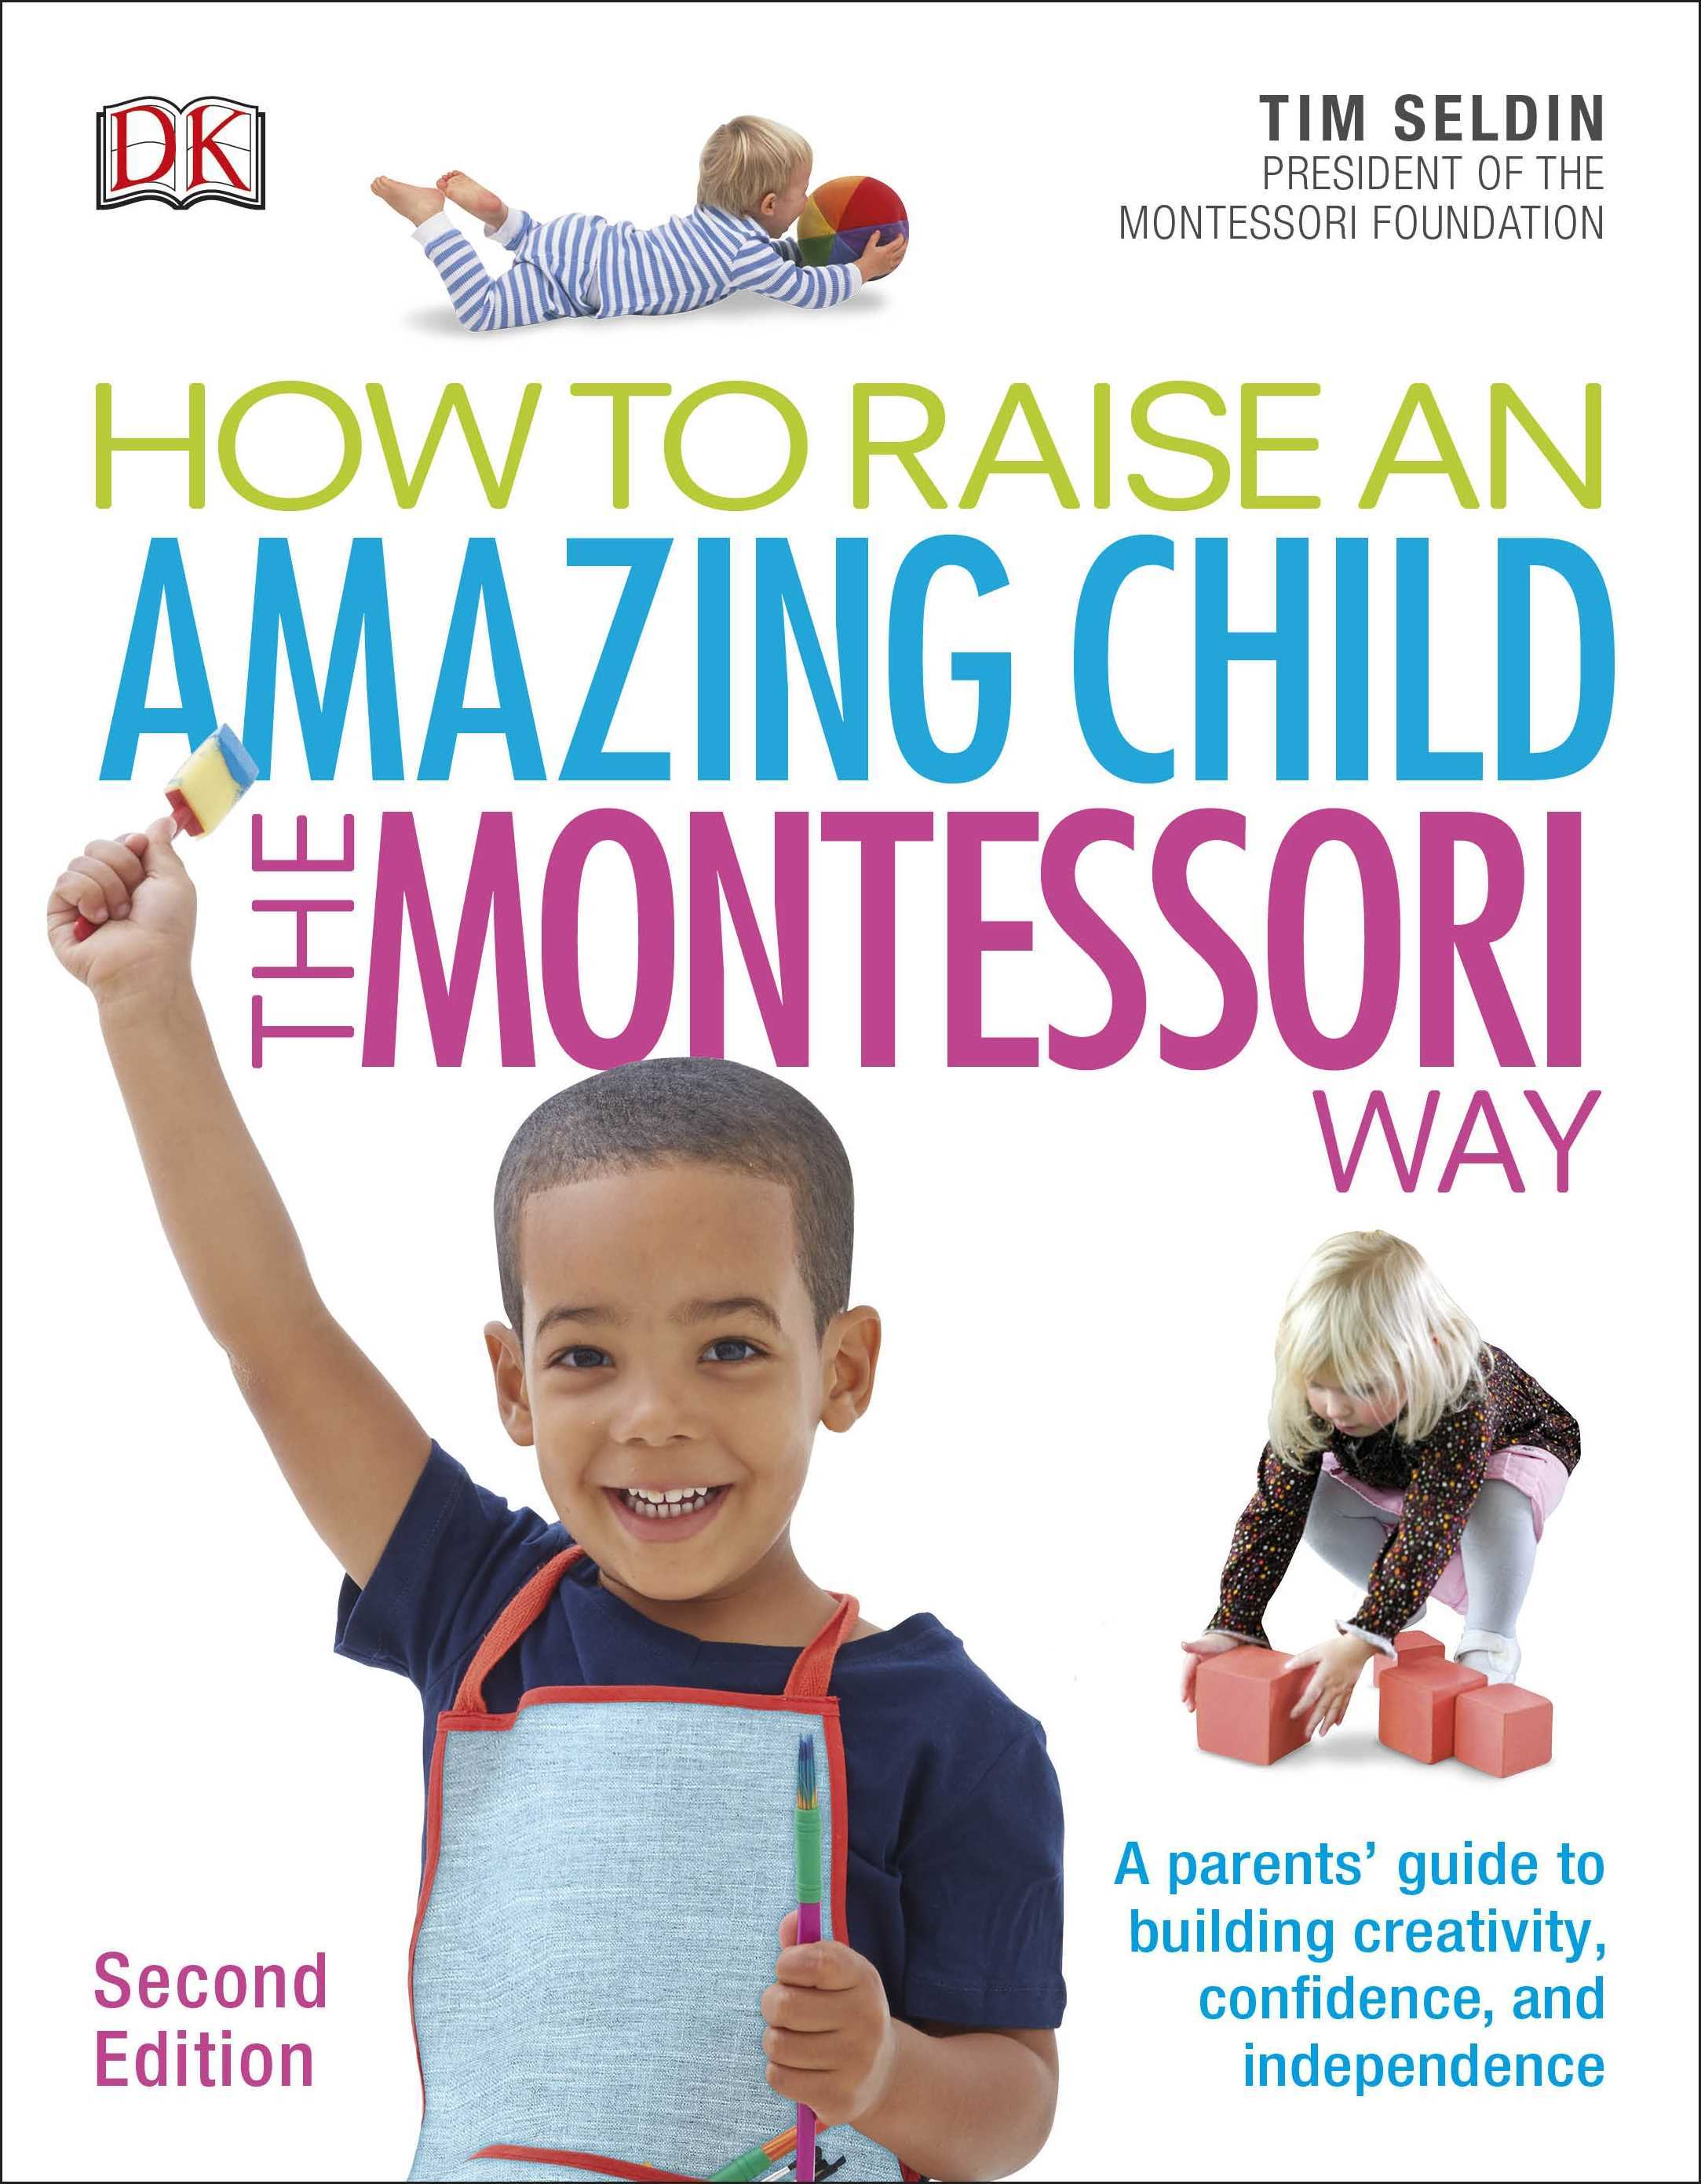 How To Raise An Amazing Child the Montessori Way (2nd Edition)